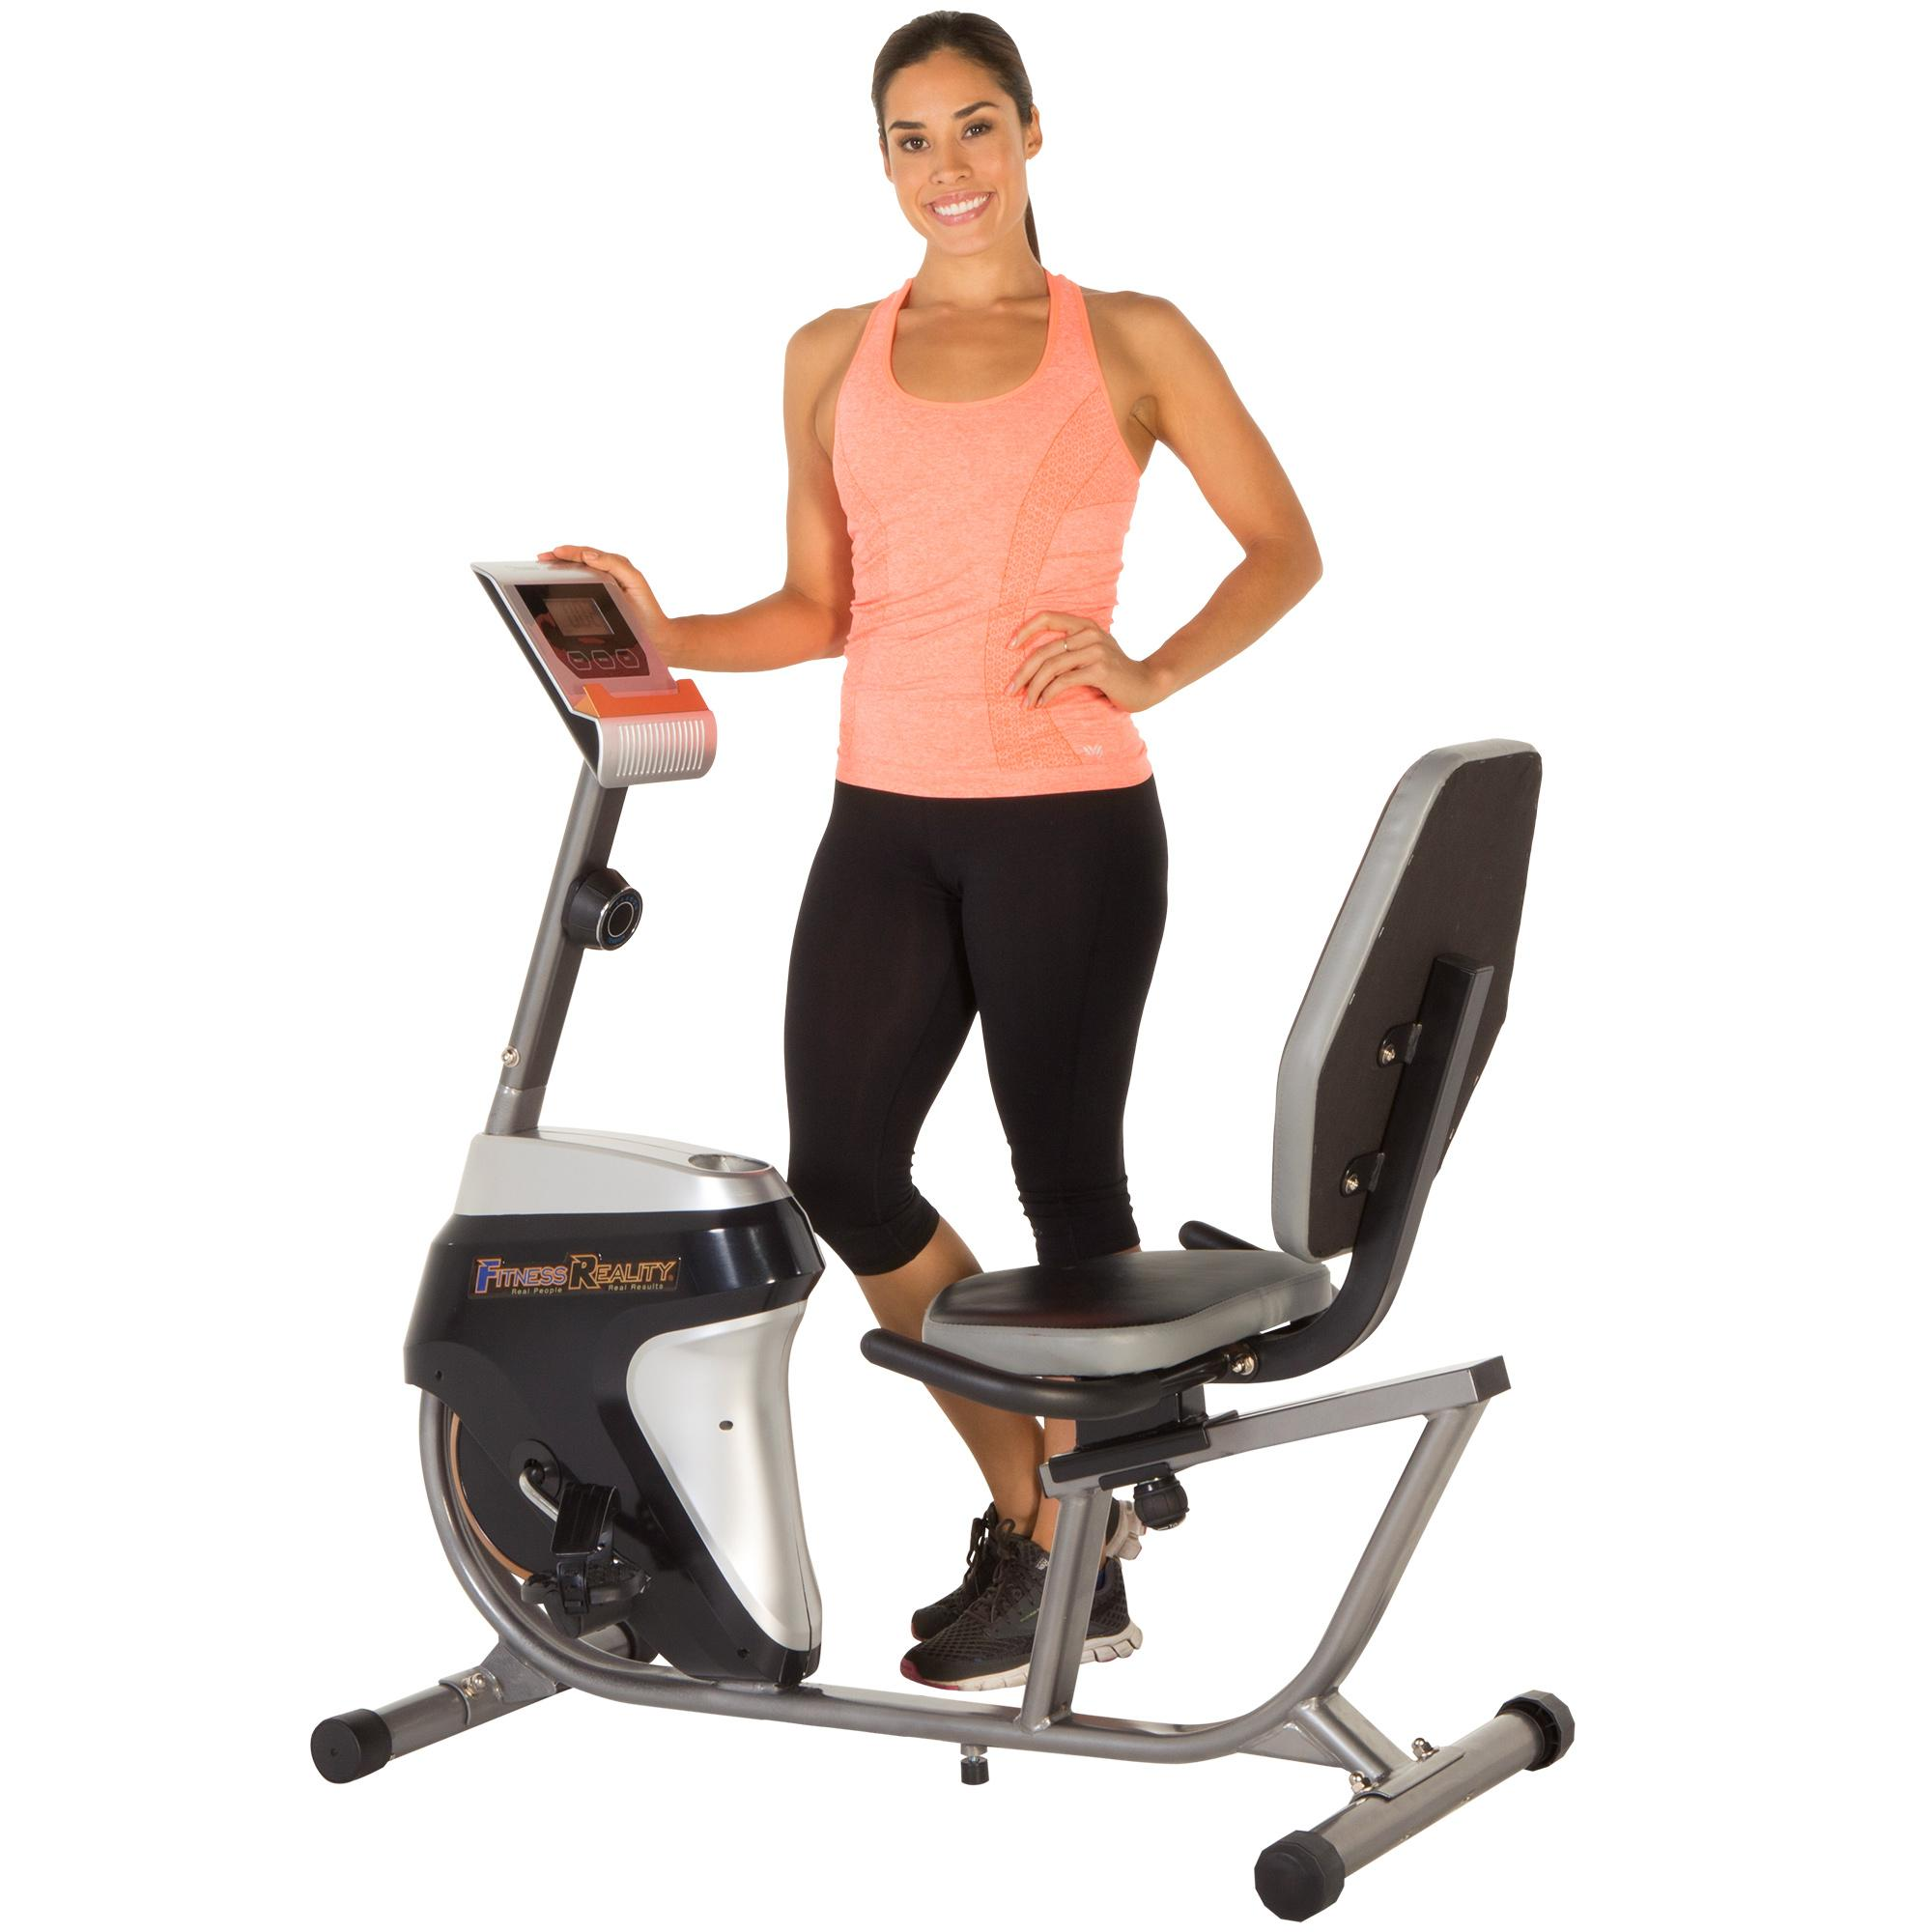 Exercise Bike Tall Person: Amazon.com : Fitness Reality R4000 Magnetic Tension